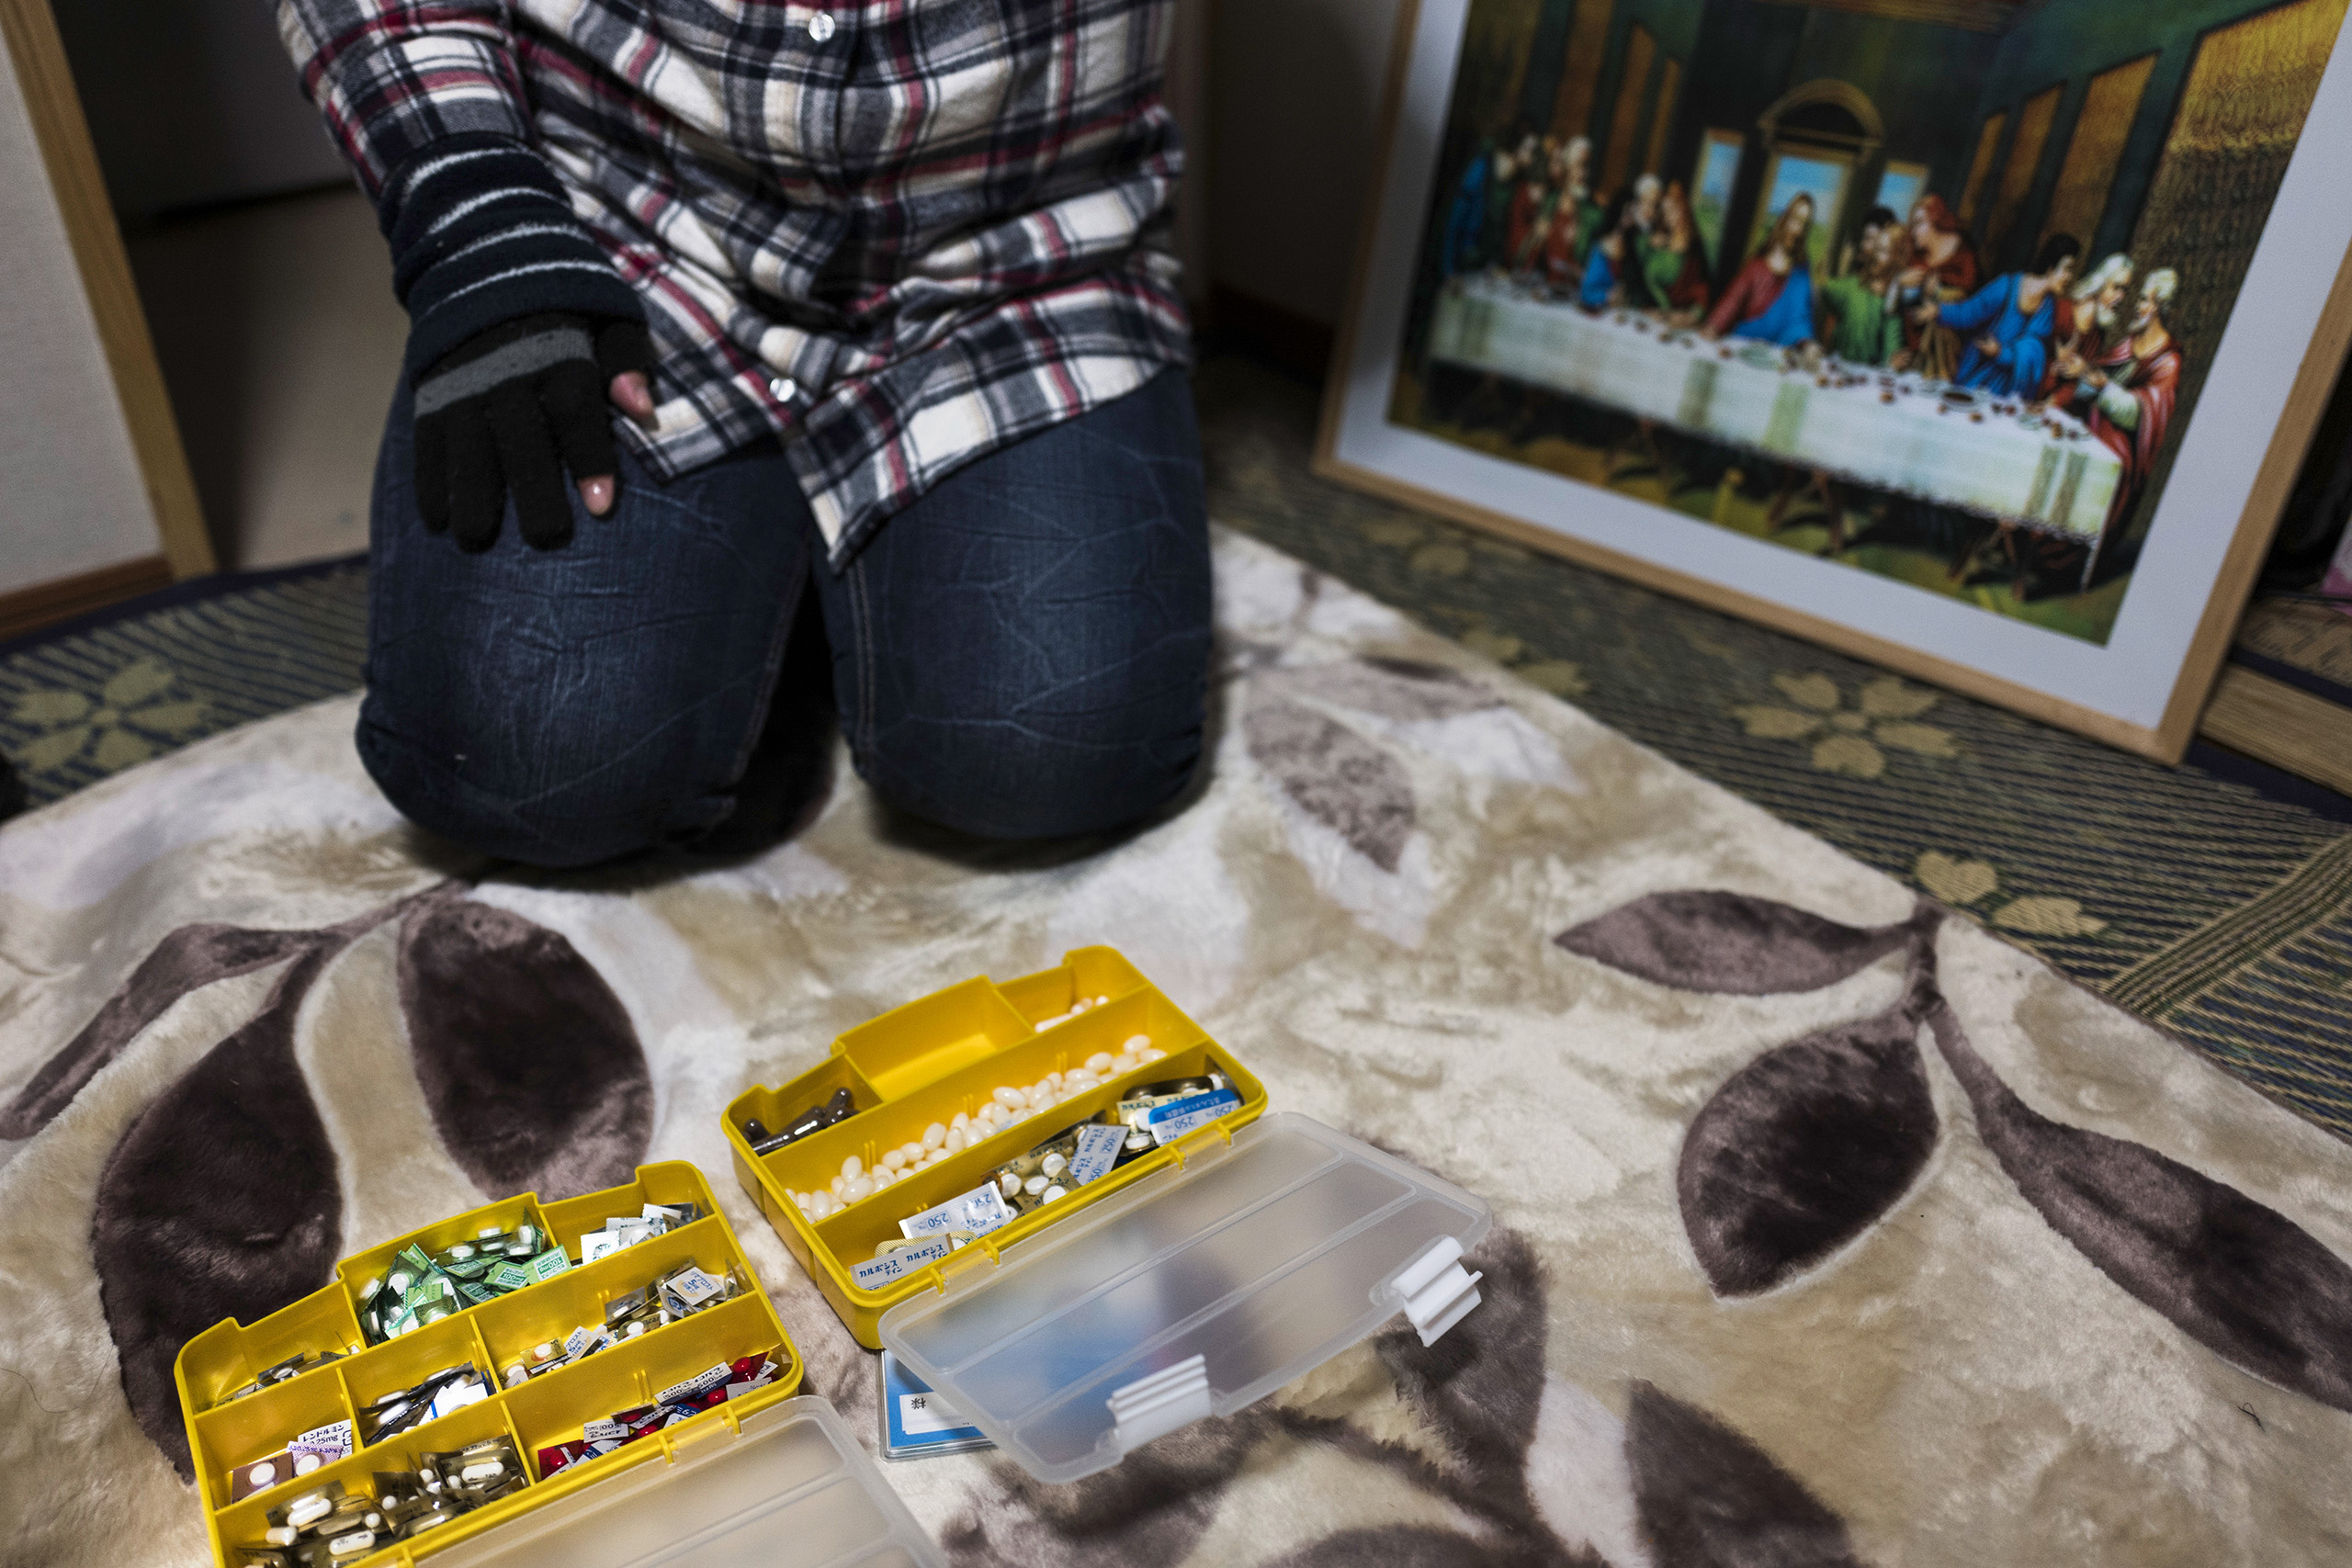 Terumi Murakami, a 43-year-old mother of three children and an evacuee from Okuma, 5km from the Fukushima Daiichi nuclear power plant, shows all the daily pills she takes, Iwaki, Japan, March 4, 2016. Murakami said severe depression and isolation pushed her to attempt suicide in this bedroom on April 5, 2015, after taking two month's worth of prescription drugs for depression. She survived after her children found her and called an ambulance. It was also the first day of school for her youngest daughter.